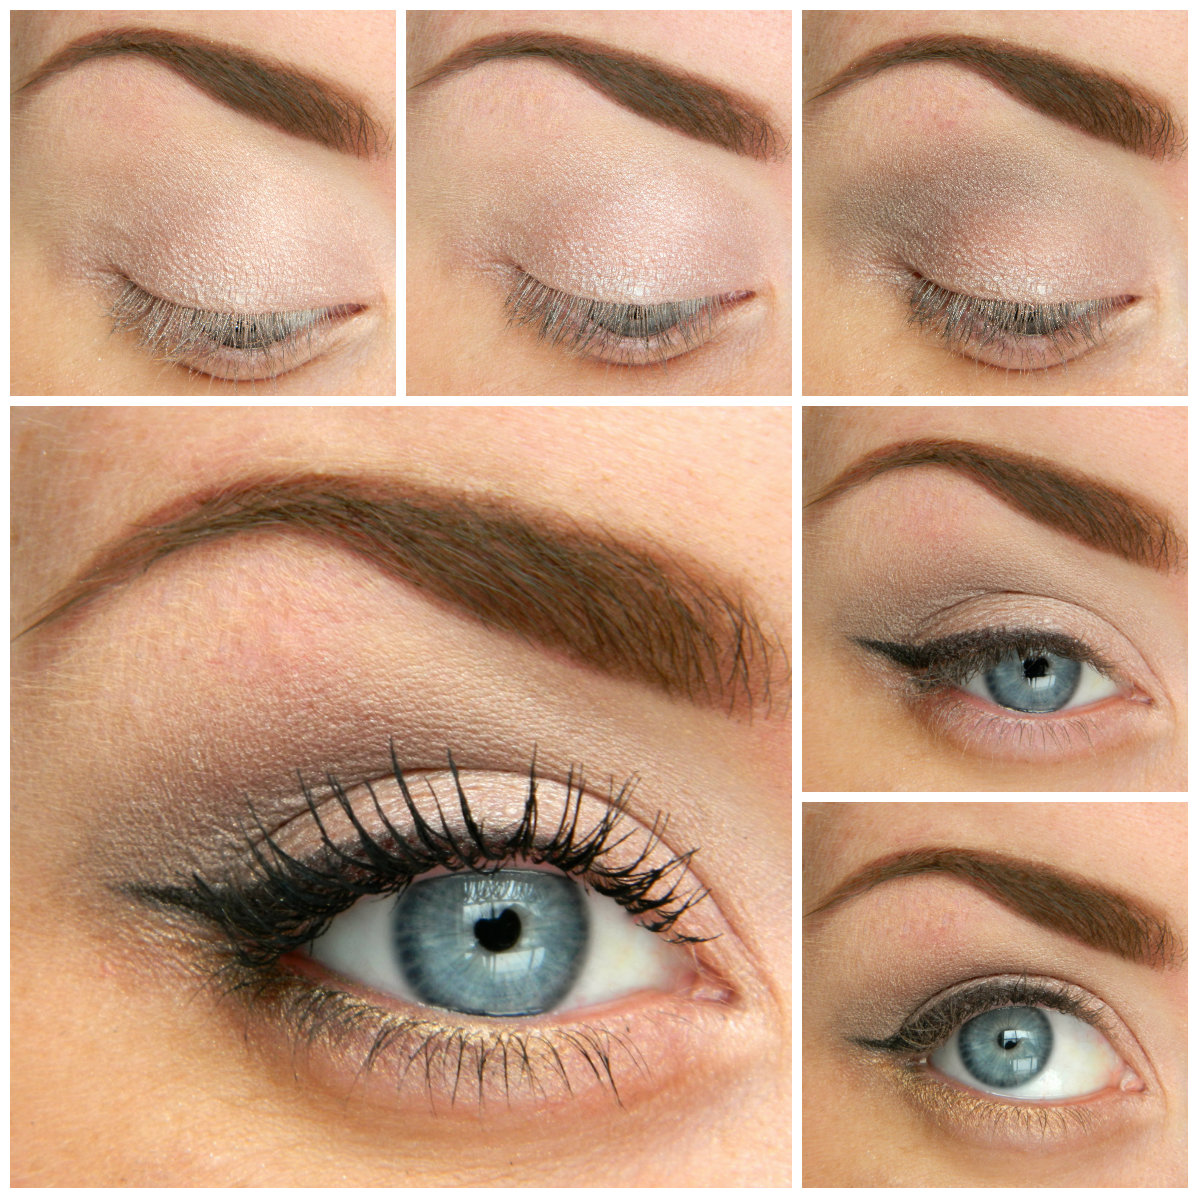 Makeup On A Date For Blue Eyes Make Up With Bright Colored Shadows